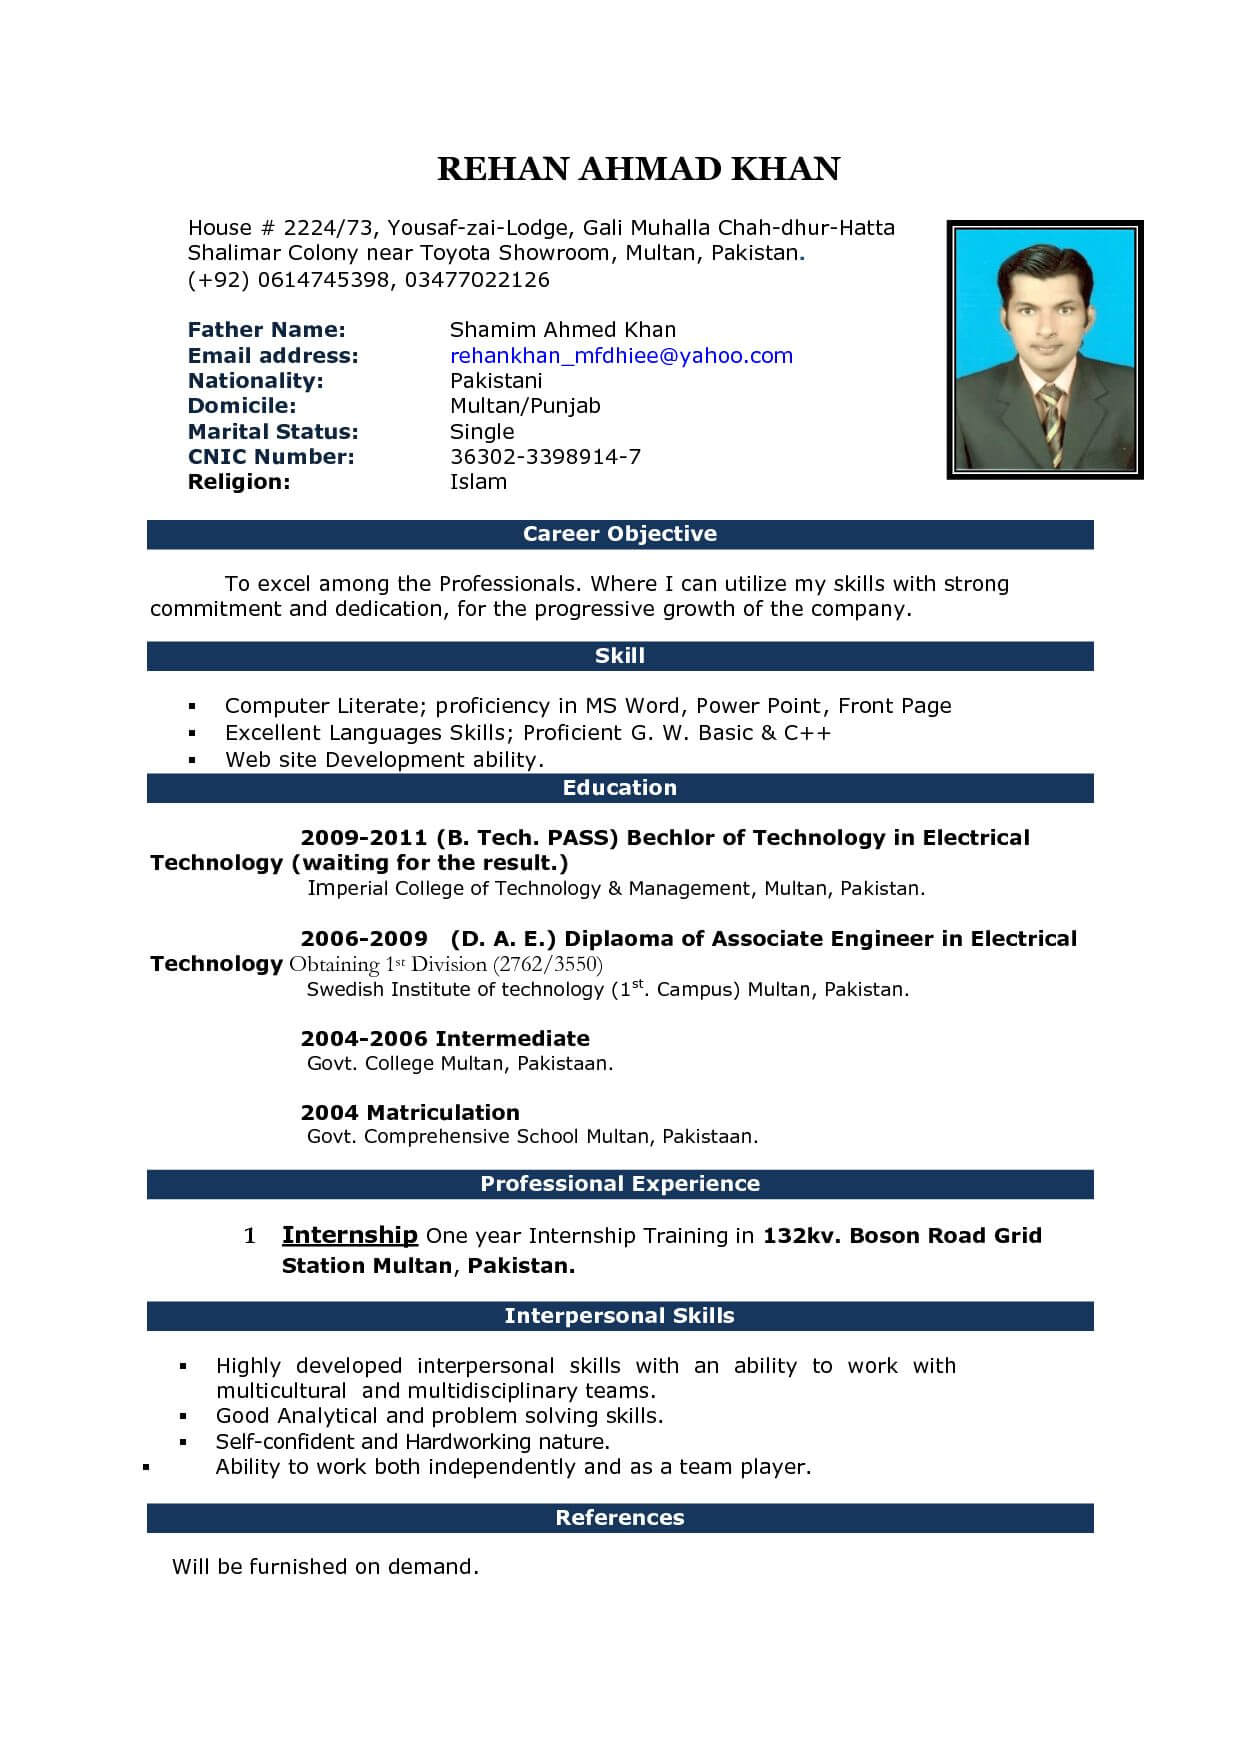 Free Download Cv Format In Ms Word Fieldstationco Microsoft Pertaining To Simple Resume Template Microsoft Word